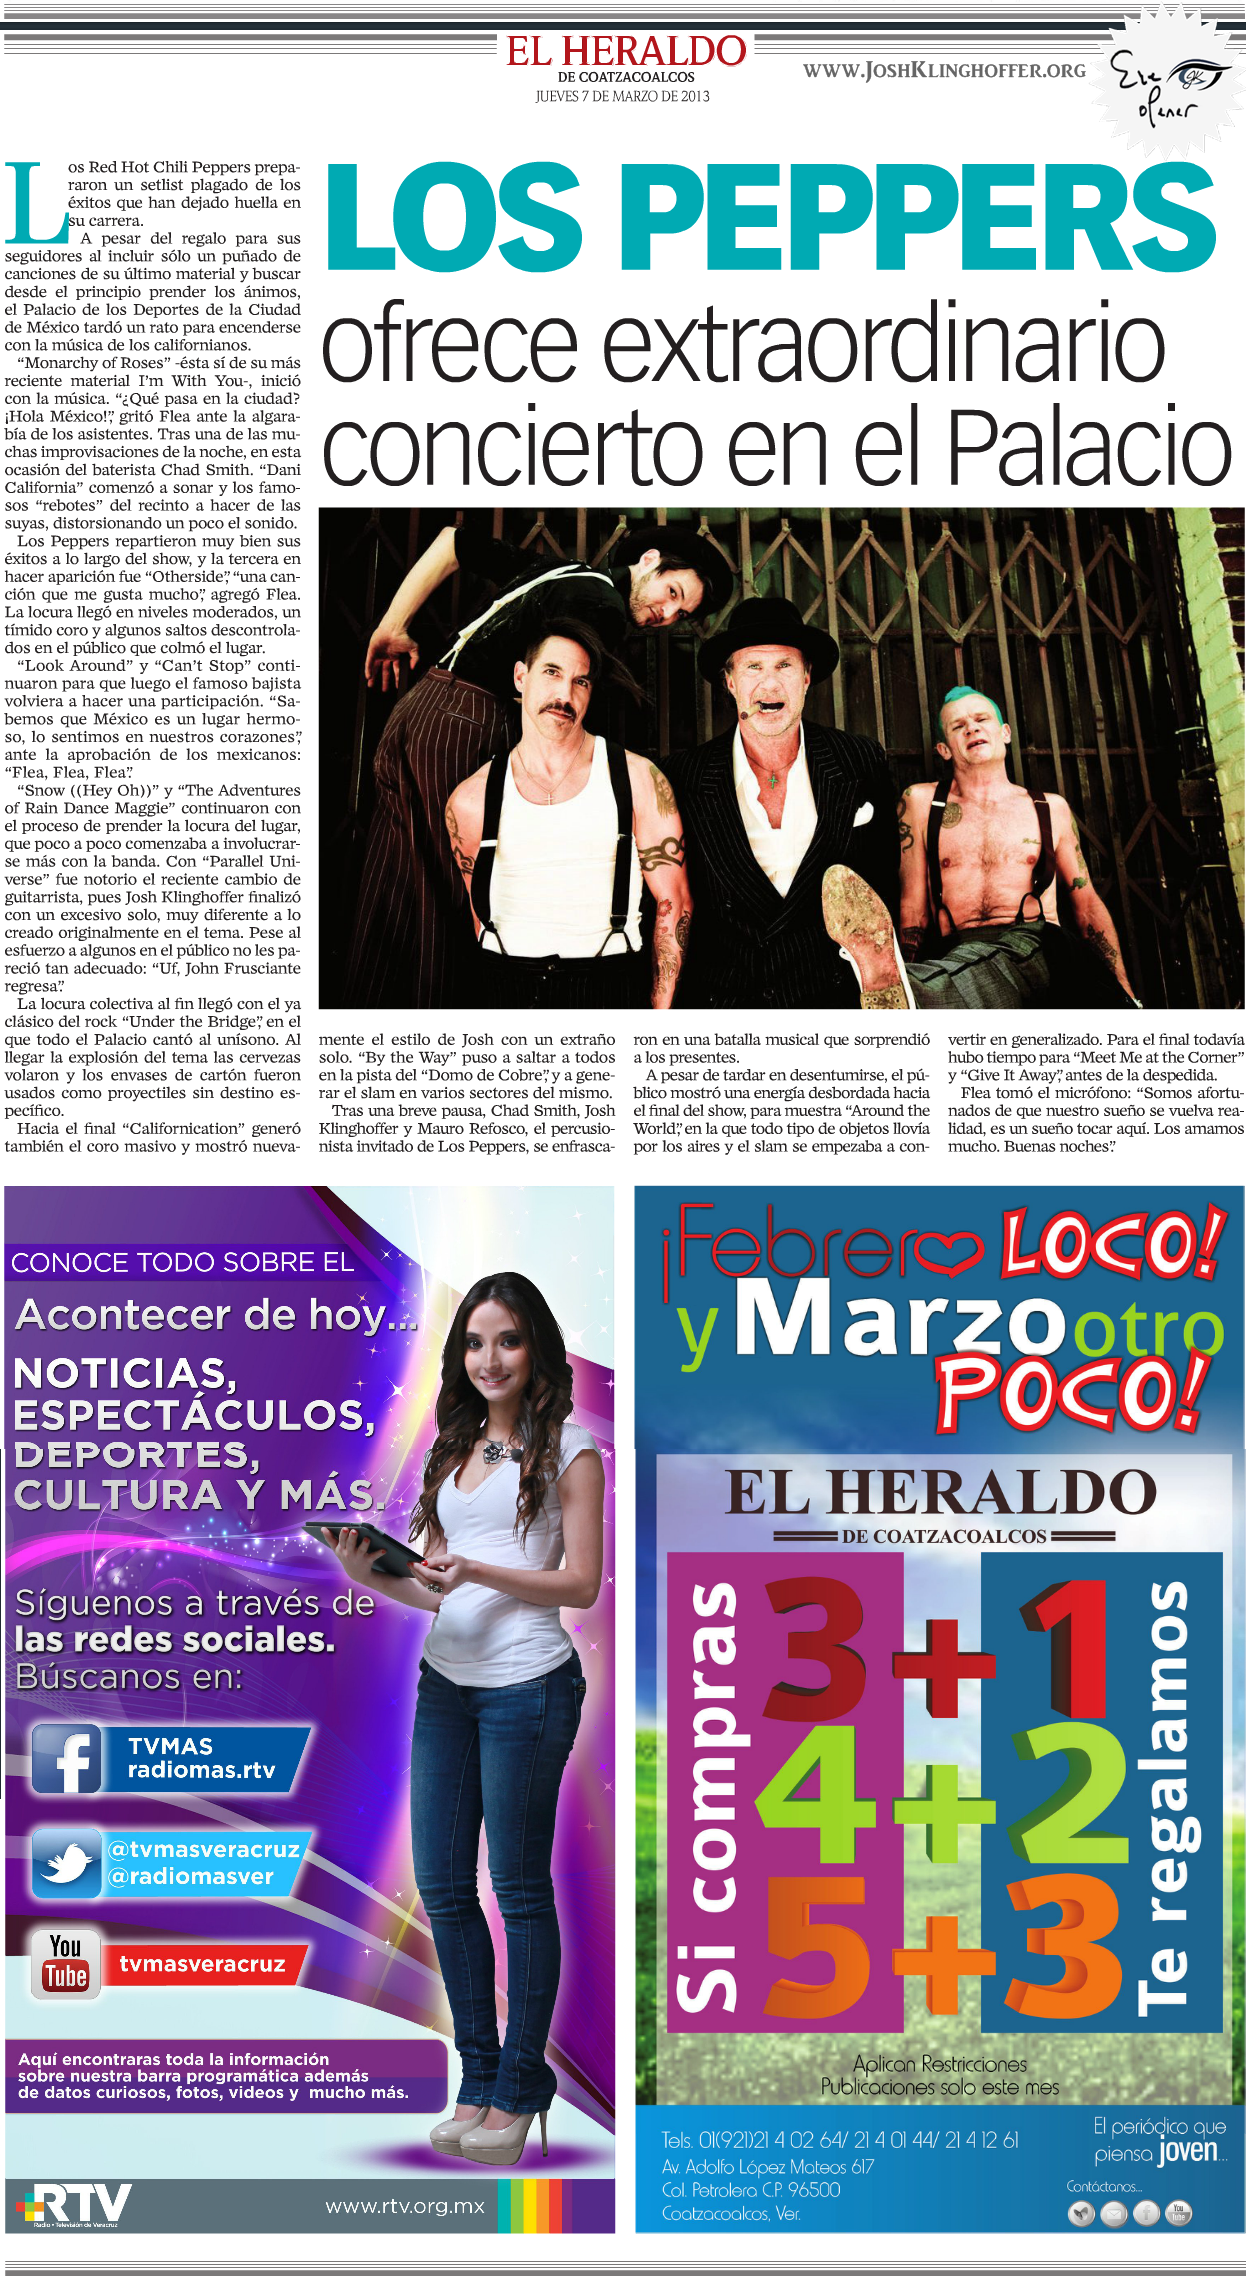 El Heraldo – March 2013